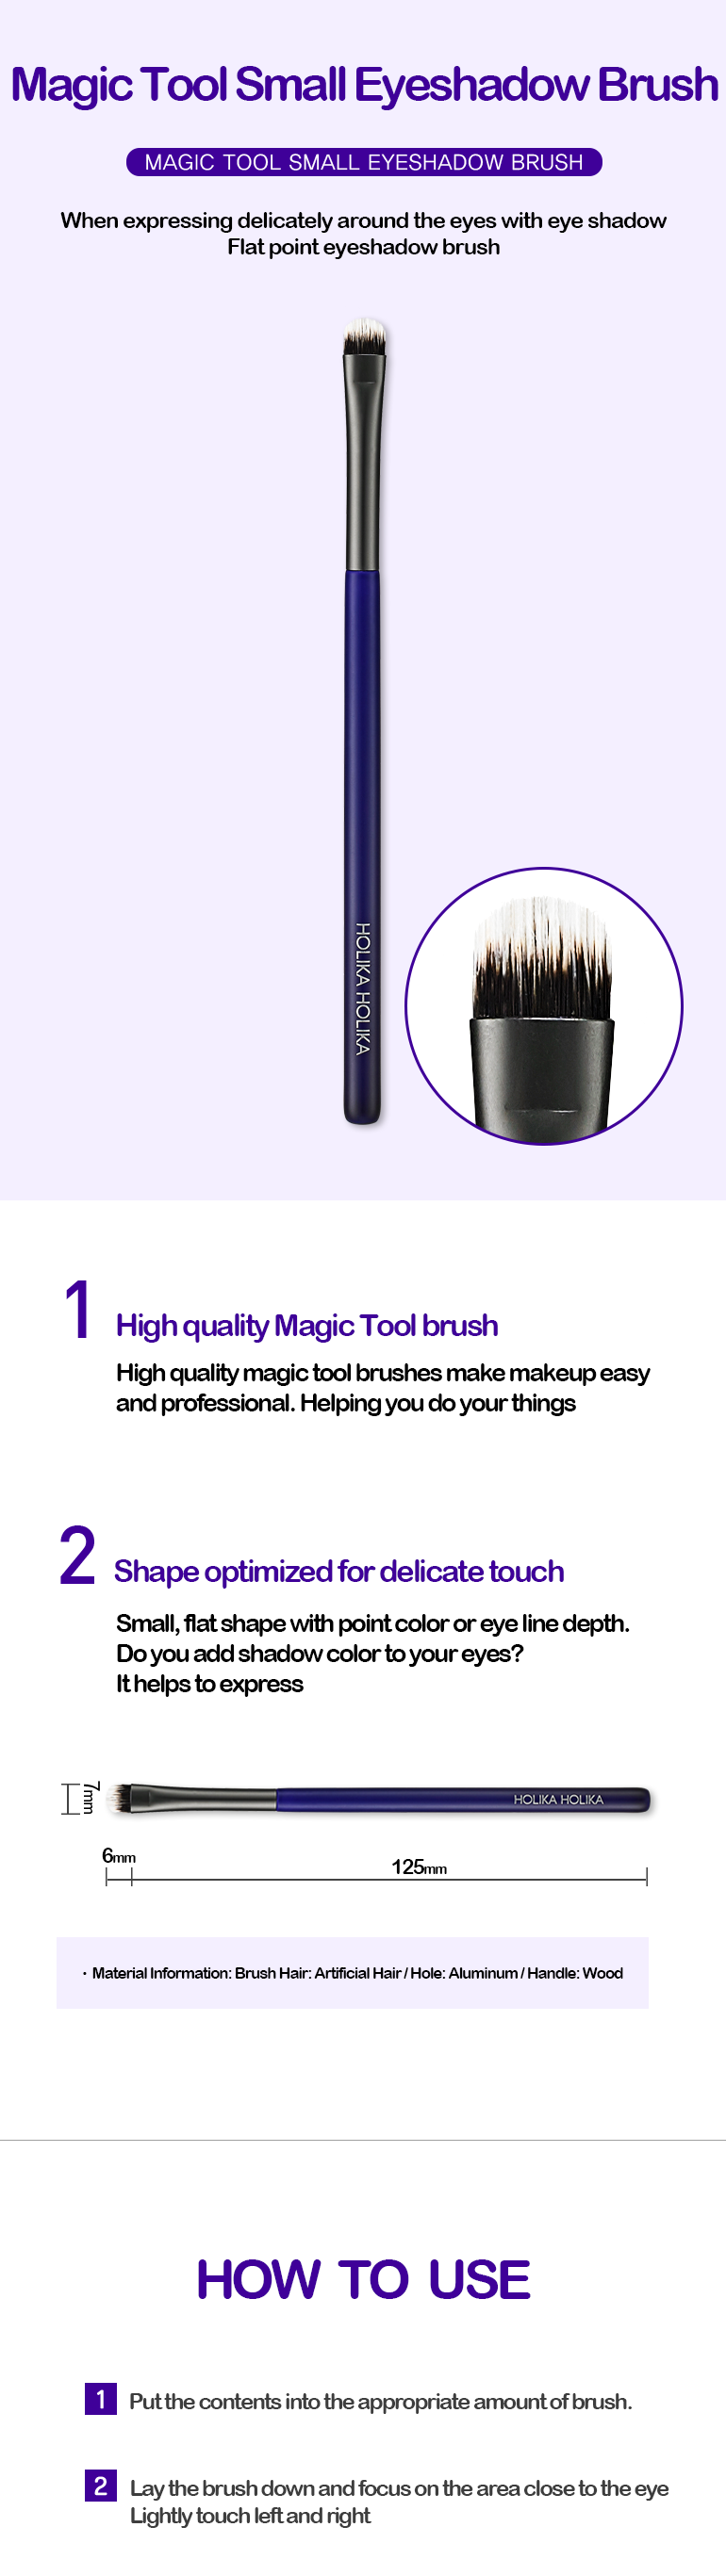 Kuas Eyeshadow | Magic Tool Small Eyeshadow Brush